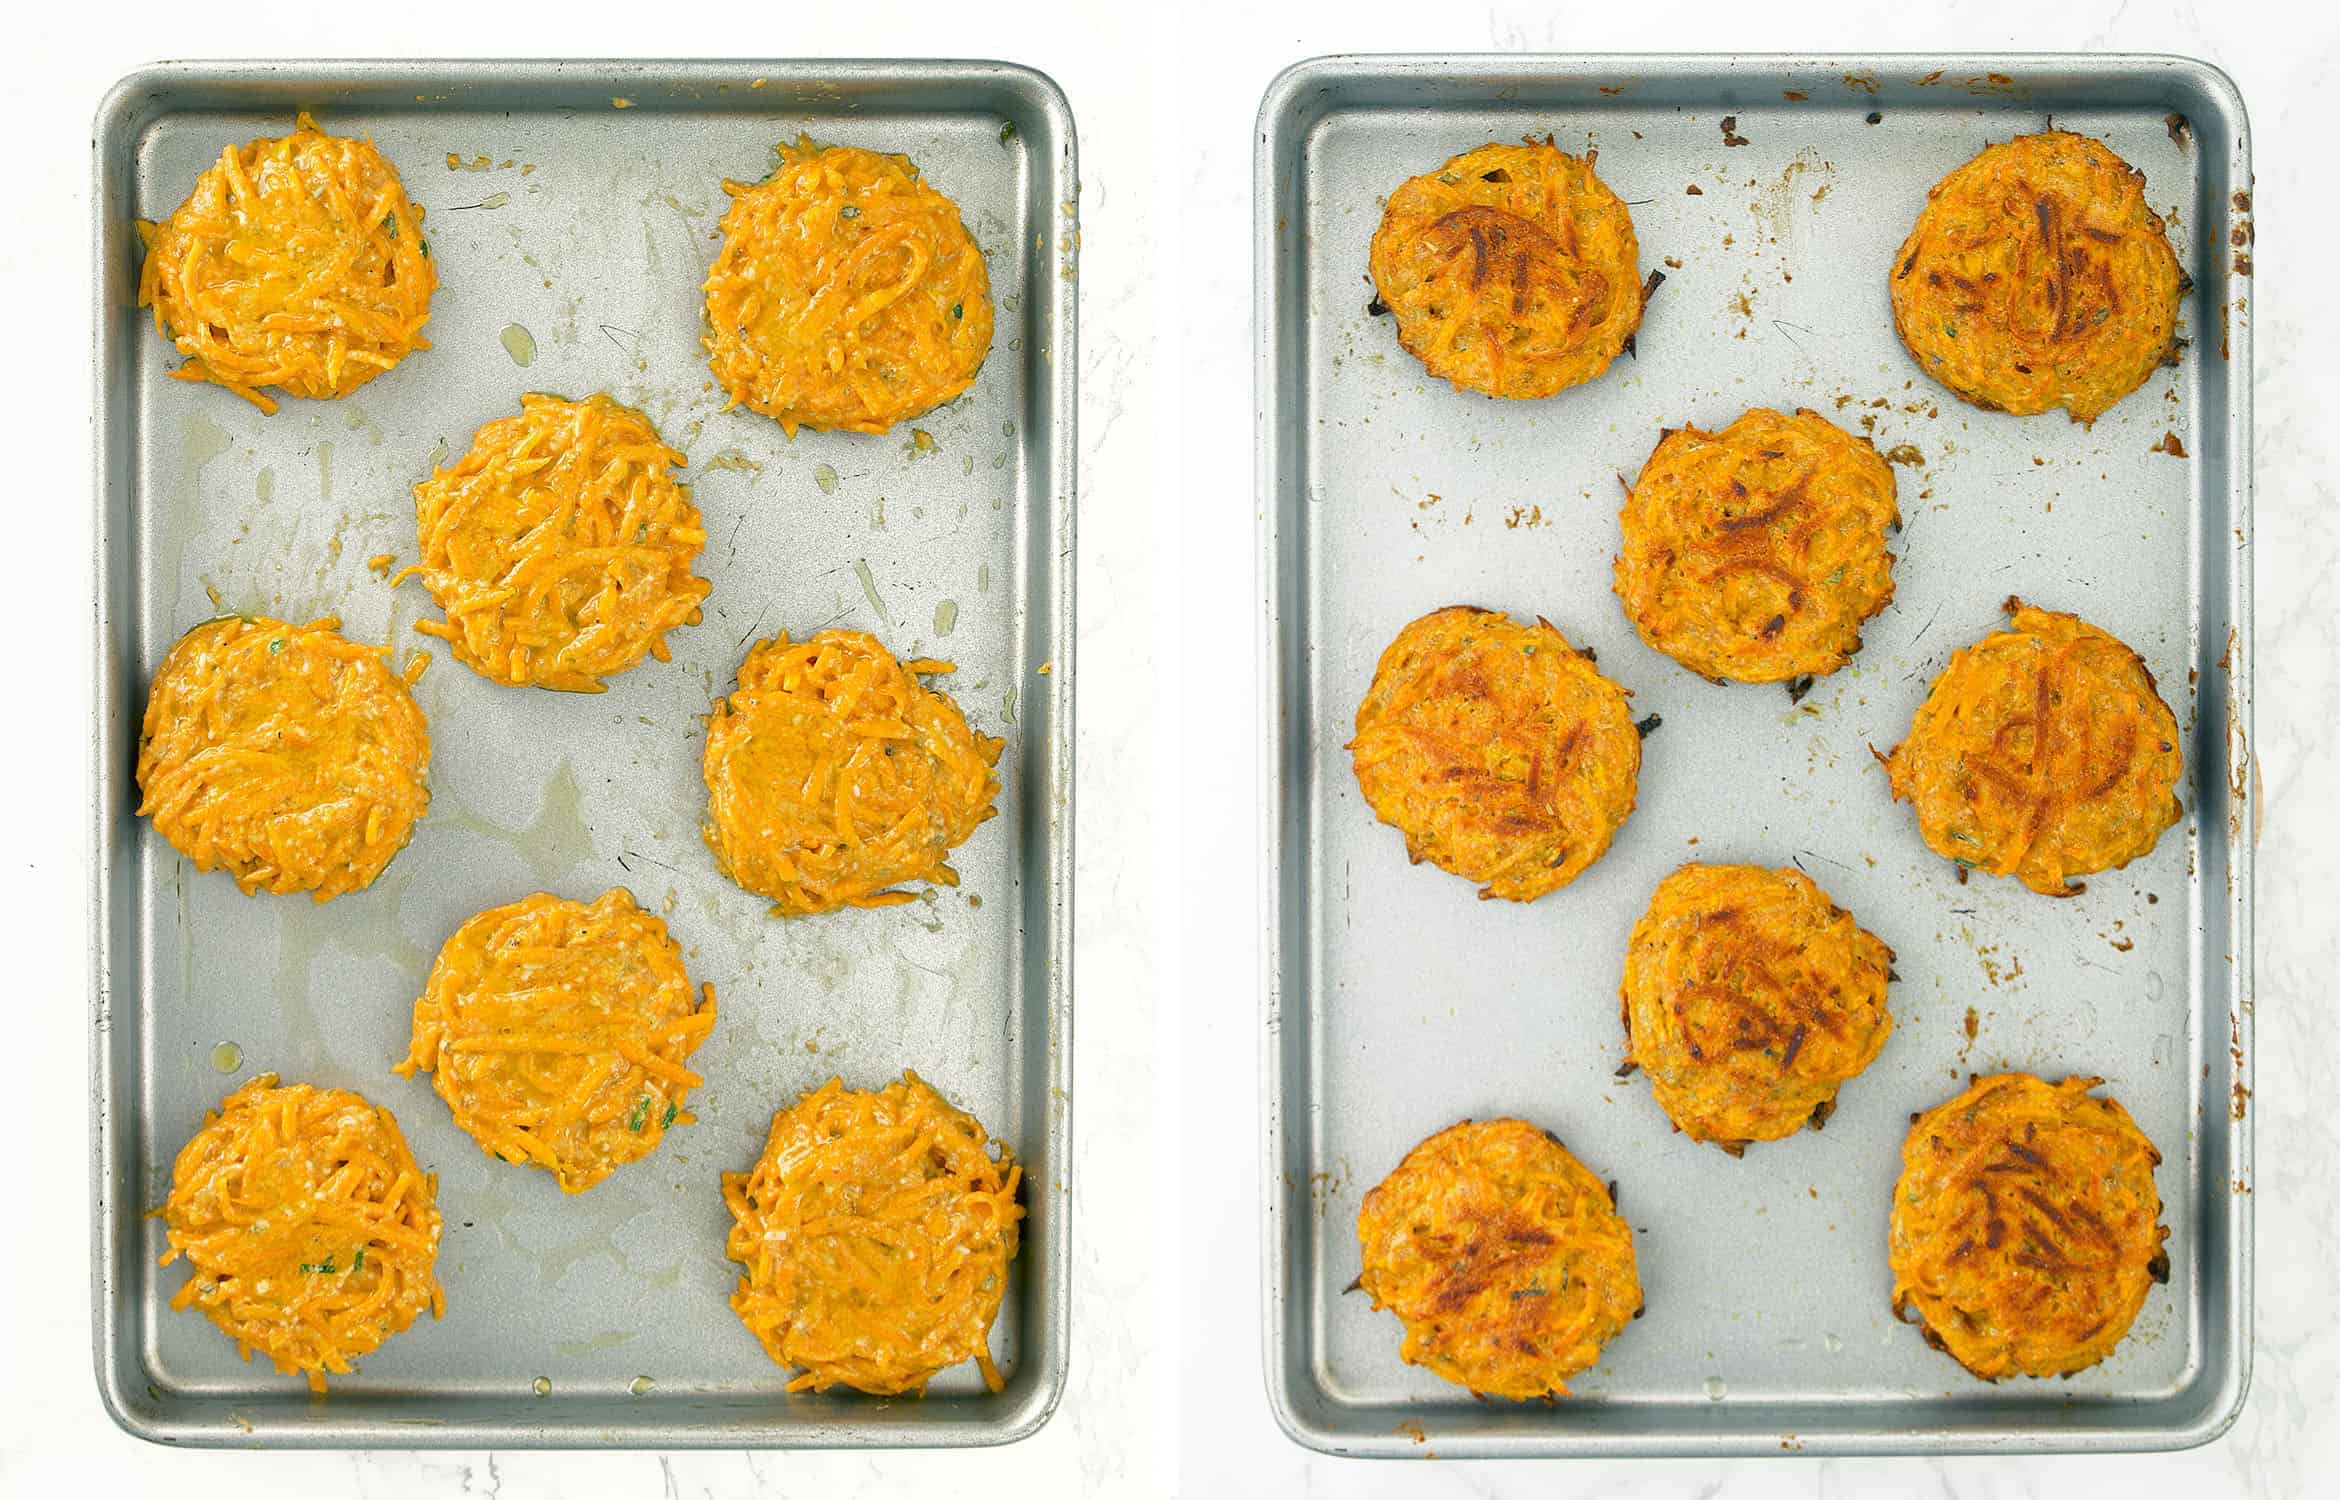 Top view of butternut squash fritters on a baking pan.